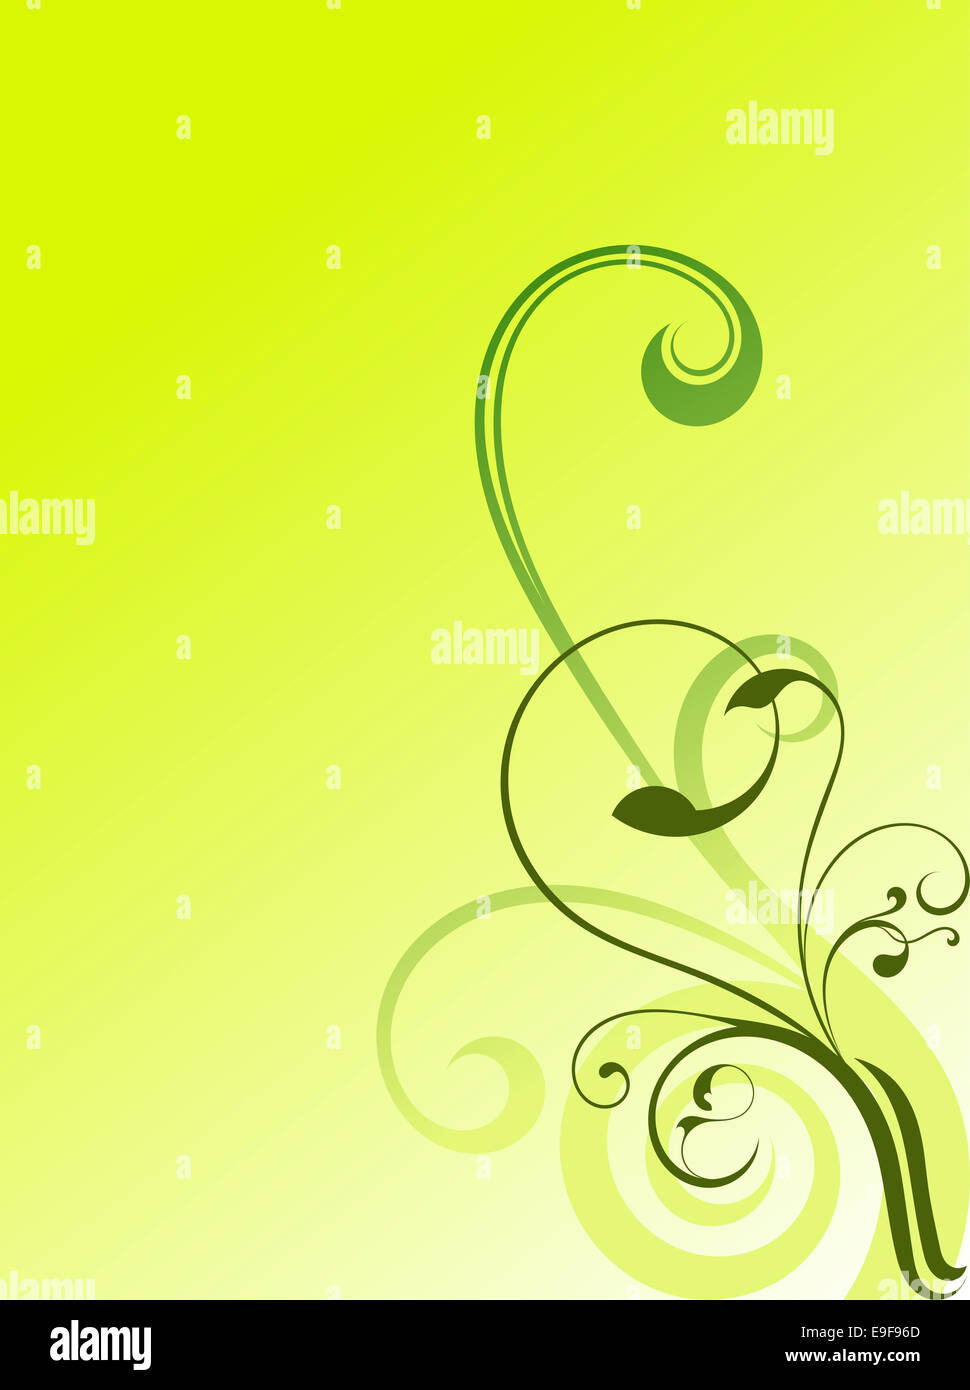 Abstract background swirls Photo Stock